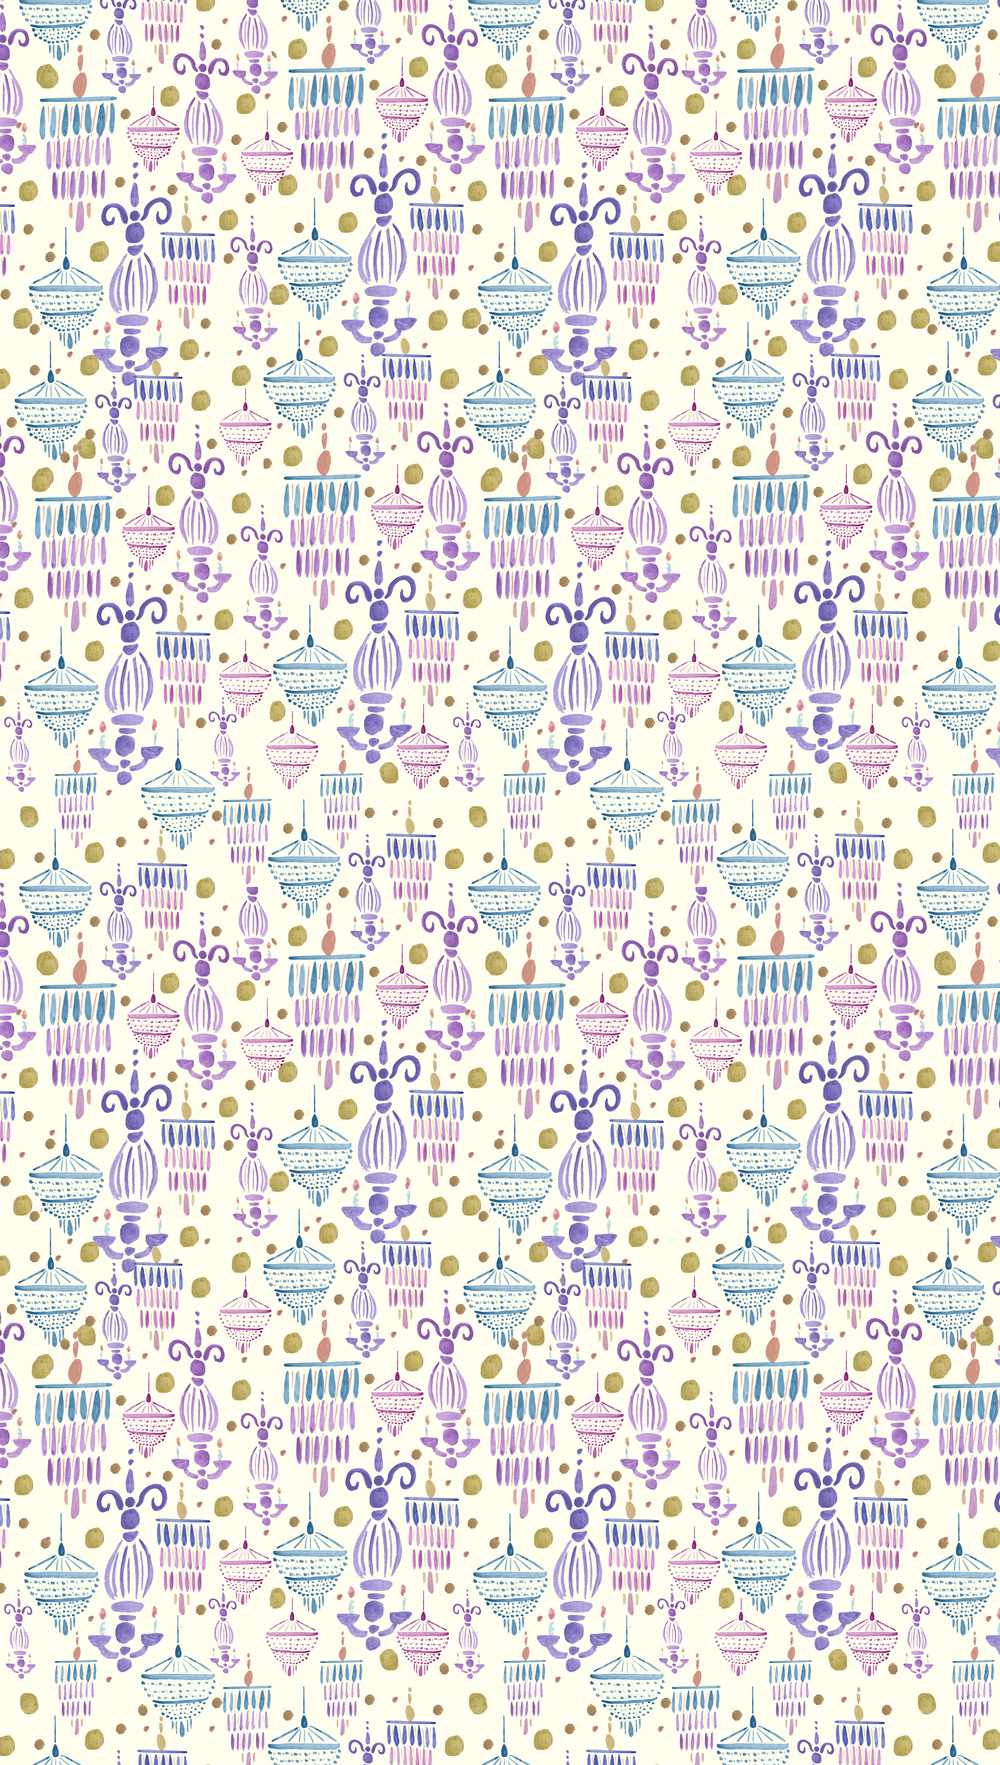 2014. Watercolor painting transformed into repeat pattern in Adobe Photoshop.